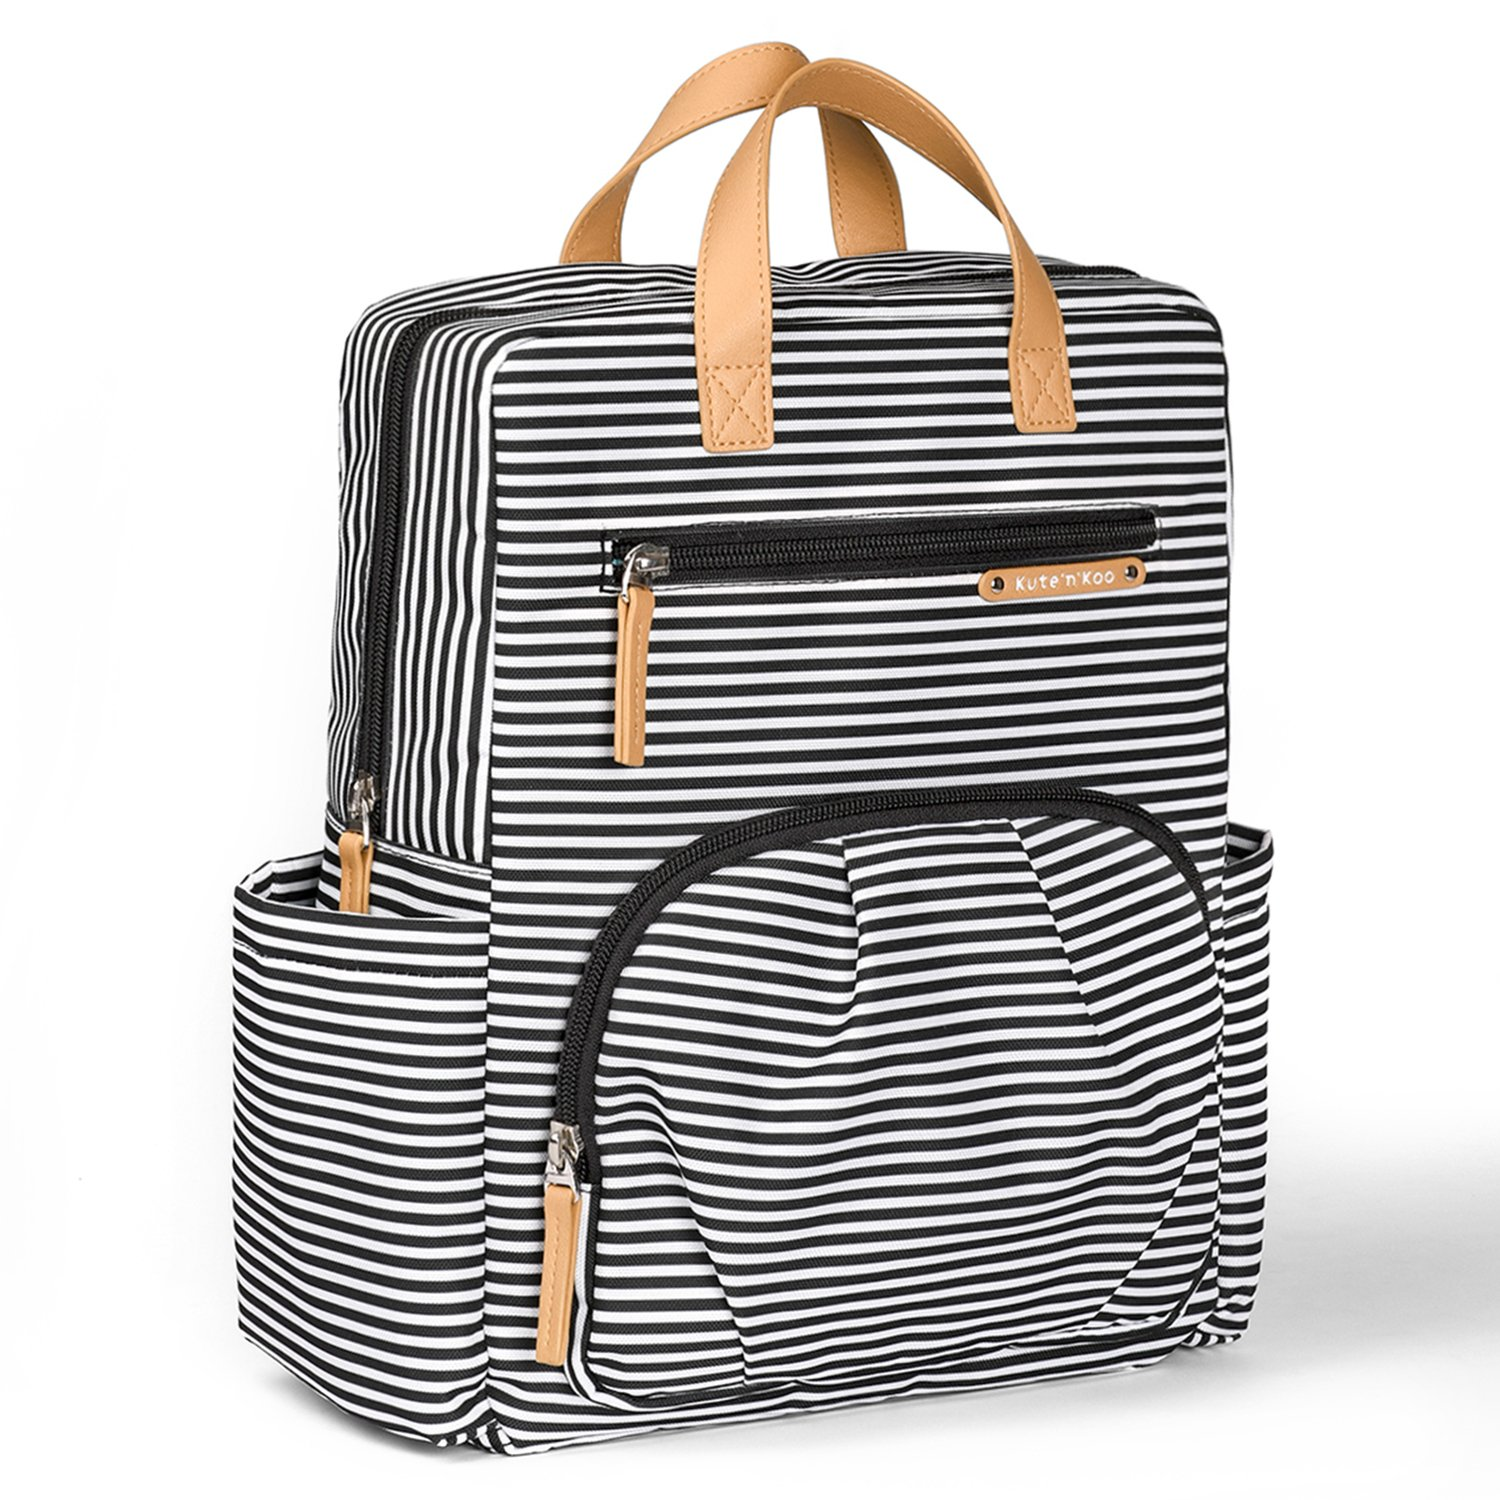 Diaper Bag Backpack by Kute 'n' Koo - New Enhanced Version - Designer Diaper Bag, Stroller Straps, Changing Pad and 5 Stunning Colors (Toddler Edition, French Stripe) by Kute 'n' Koo